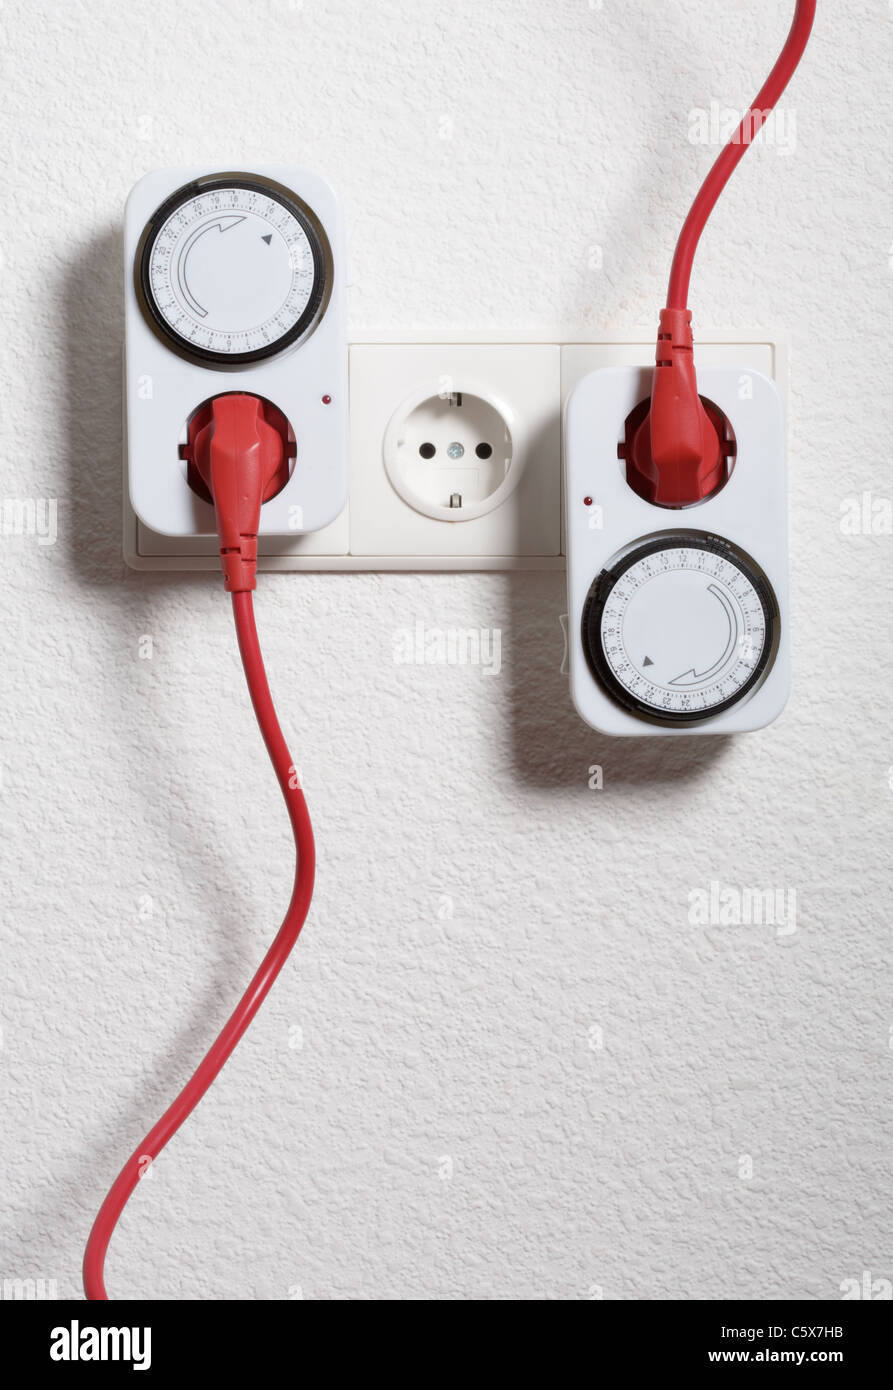 Electric Timer Stock Photos Images Alamy Electrical Switch Wiring Saving Energy And Money Image